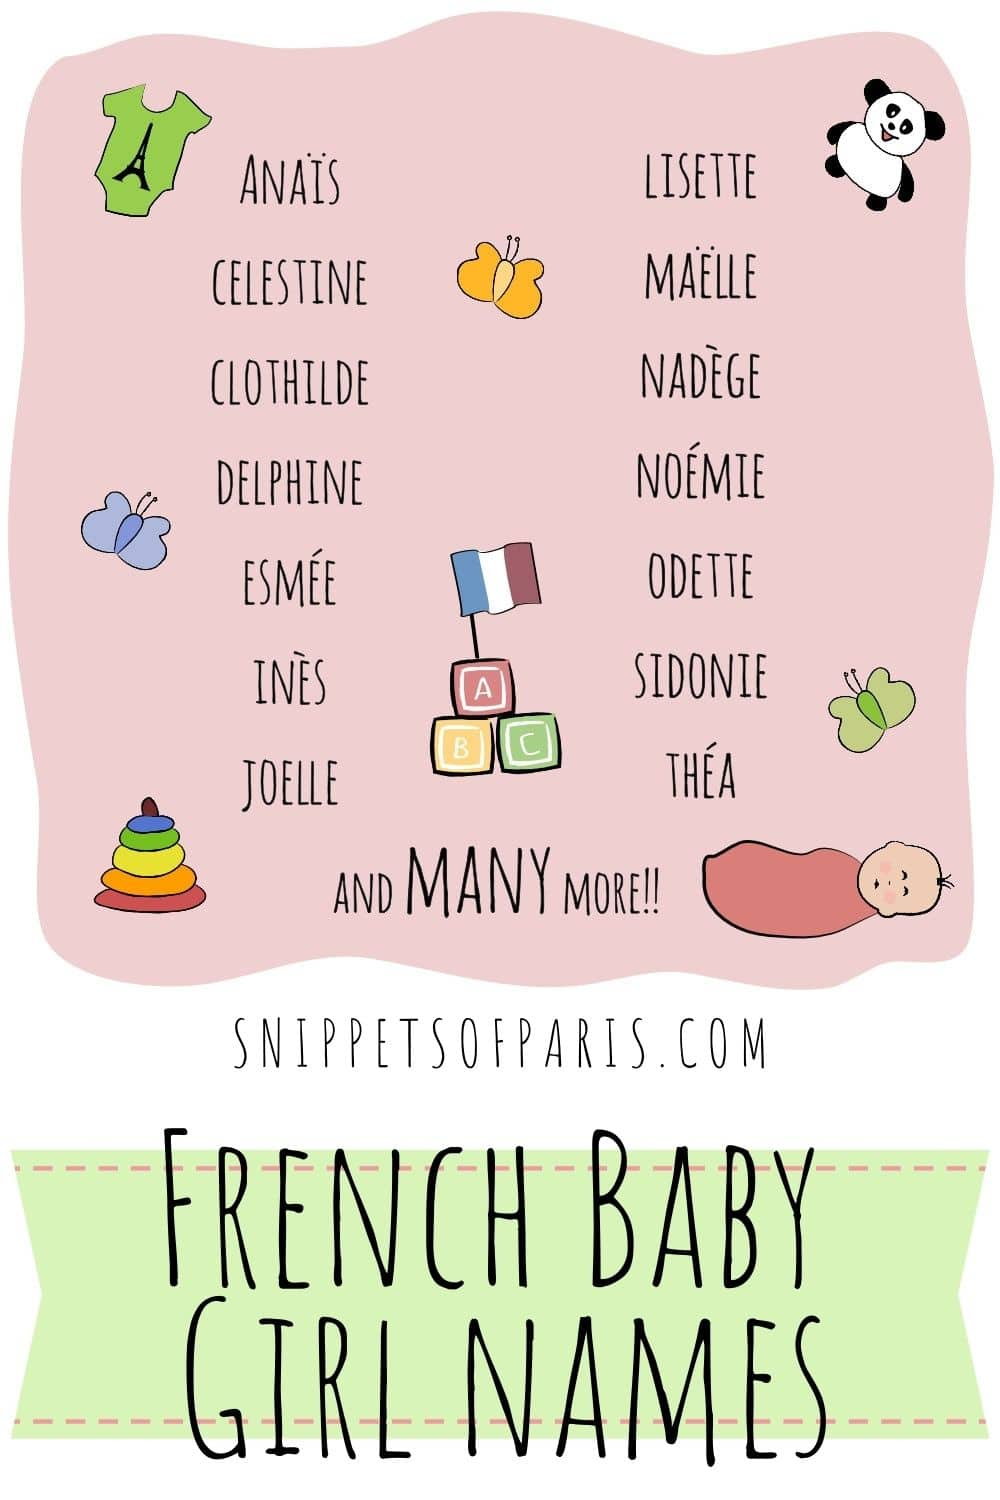 229 Chic French Girl names: Pretty & Unique (and names to avoid)